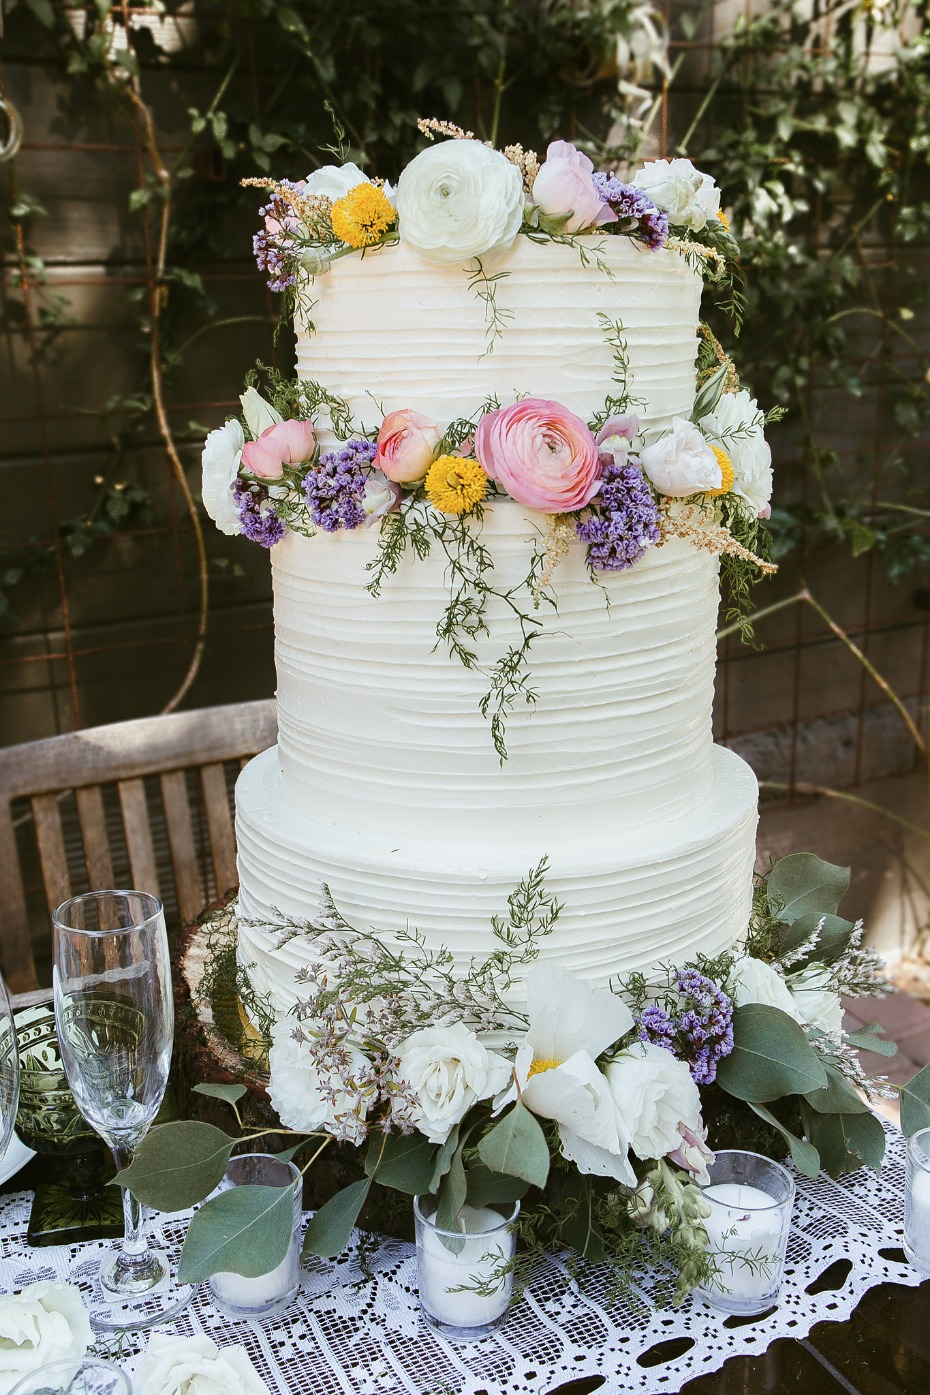 Three-tier cake with florals